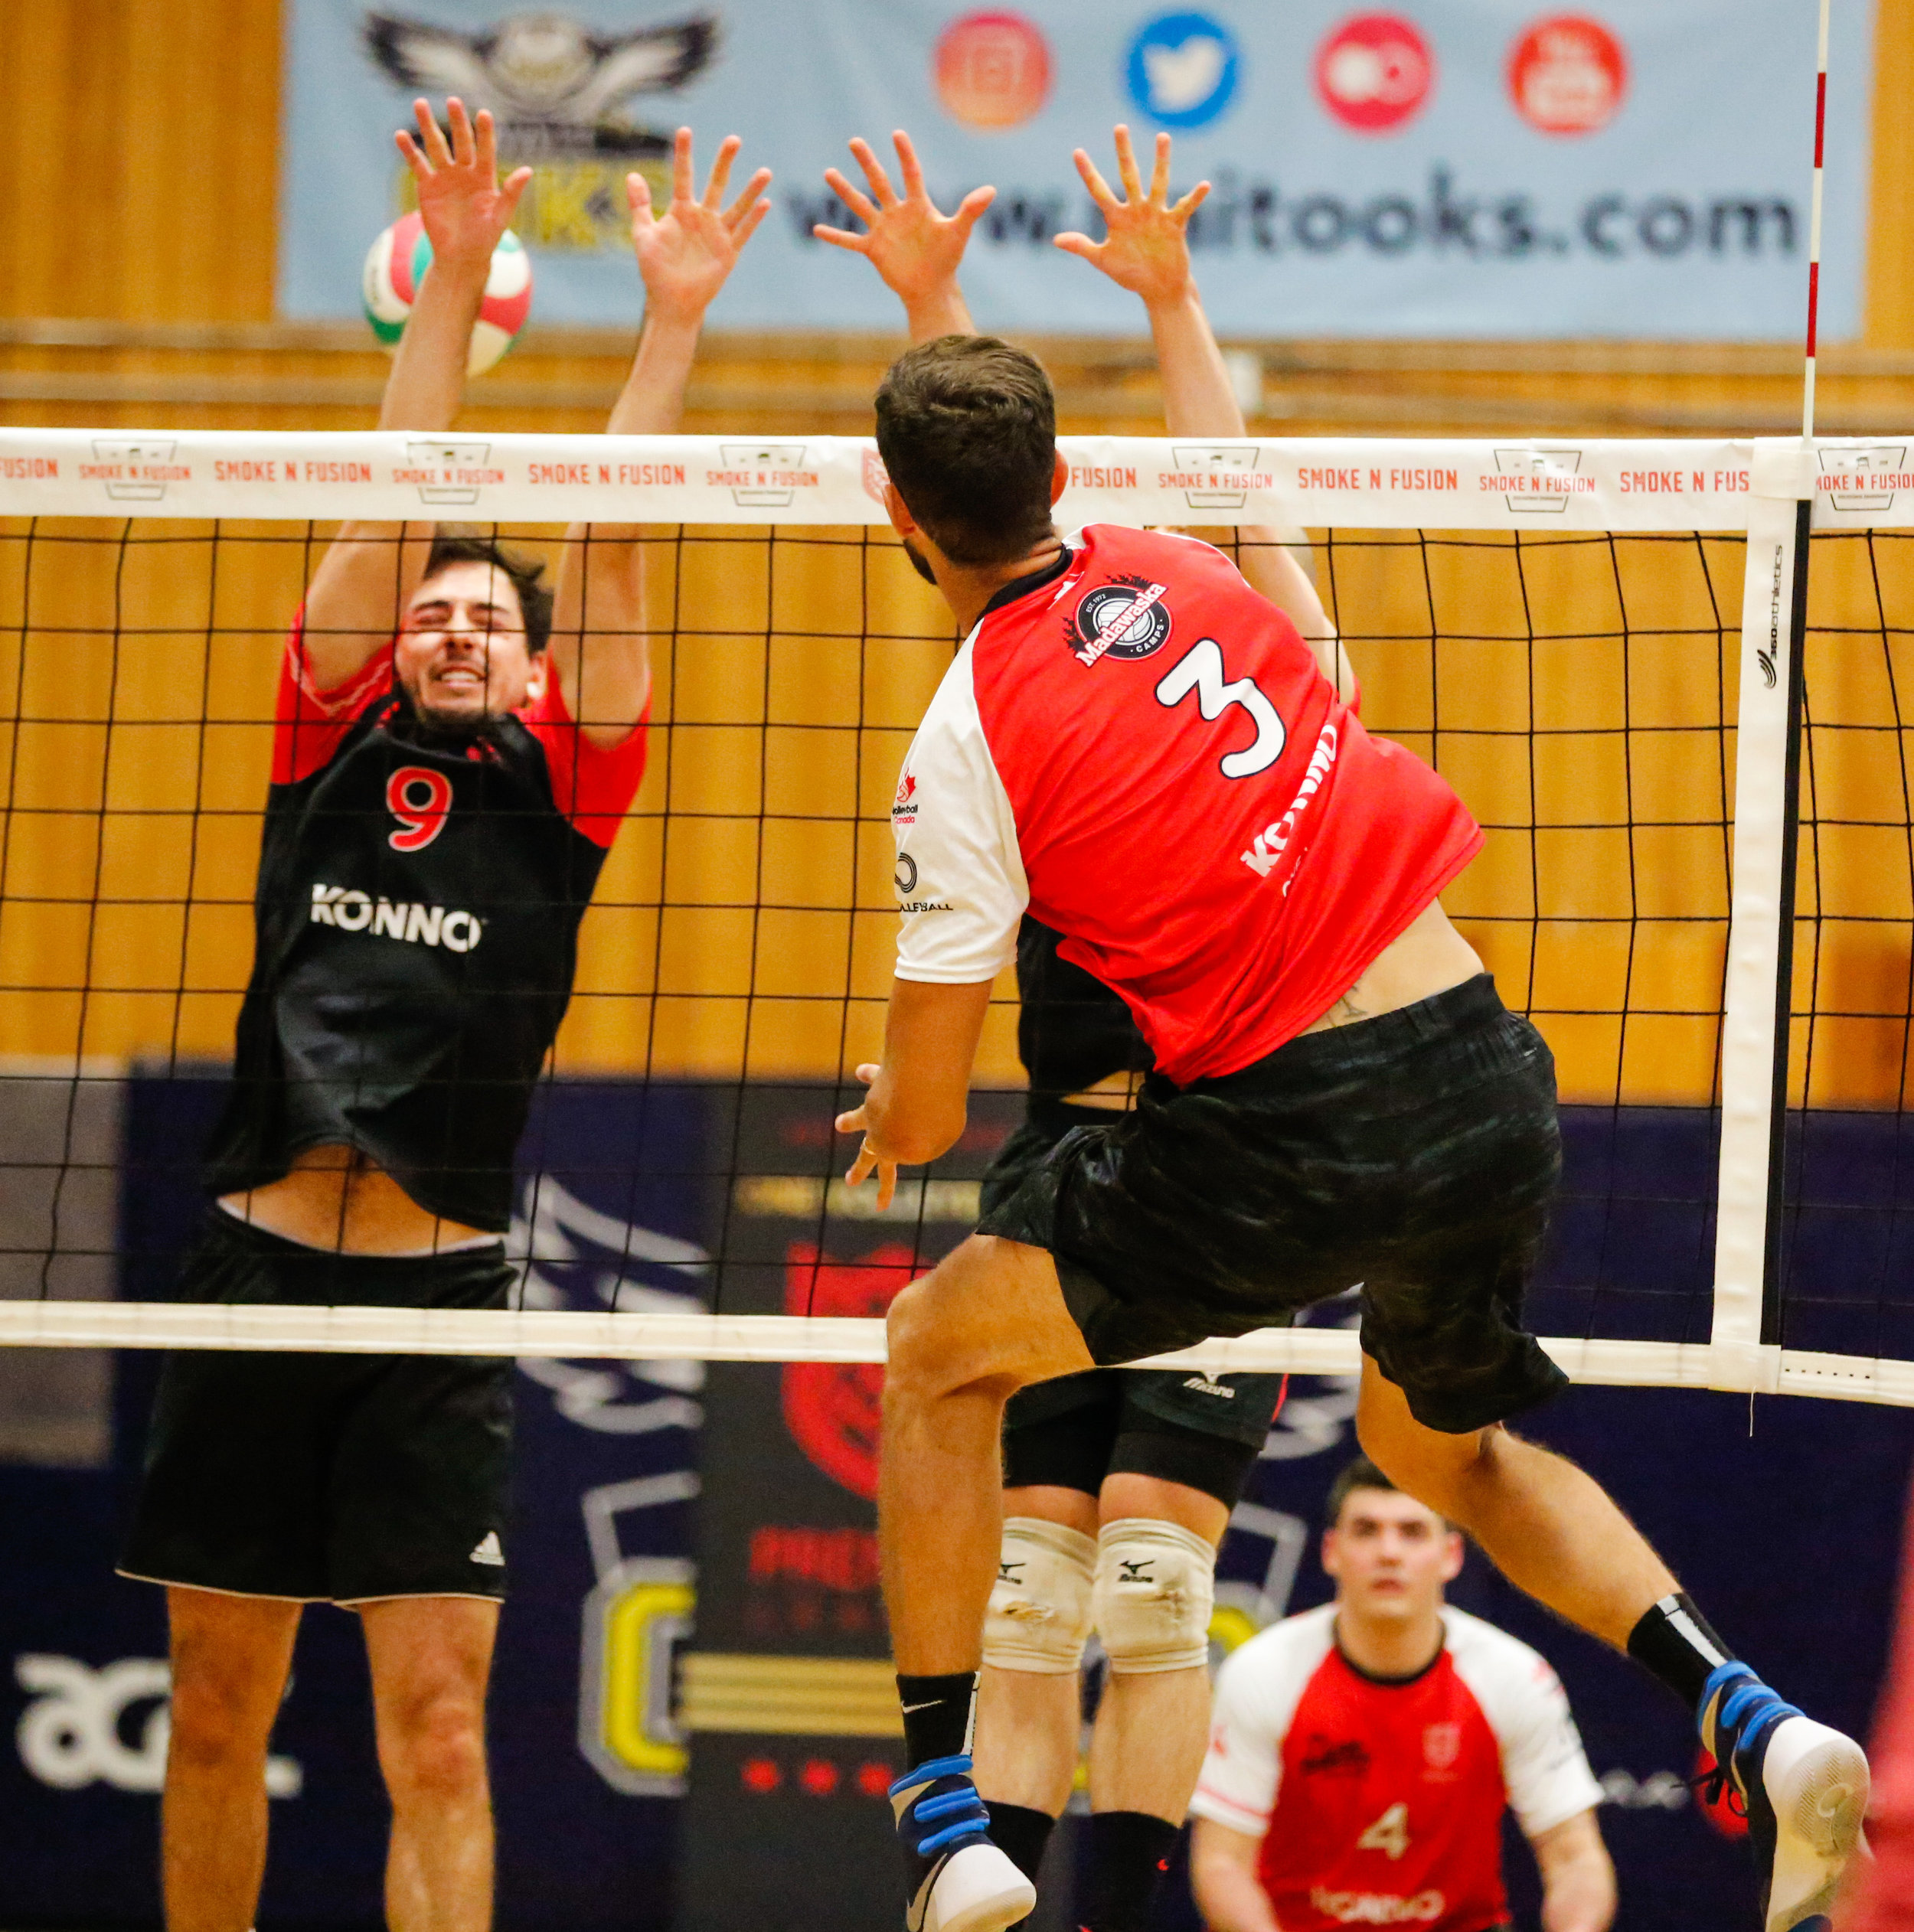 20190720 ONE Volleyball men's East vs West DH 0308.jpg